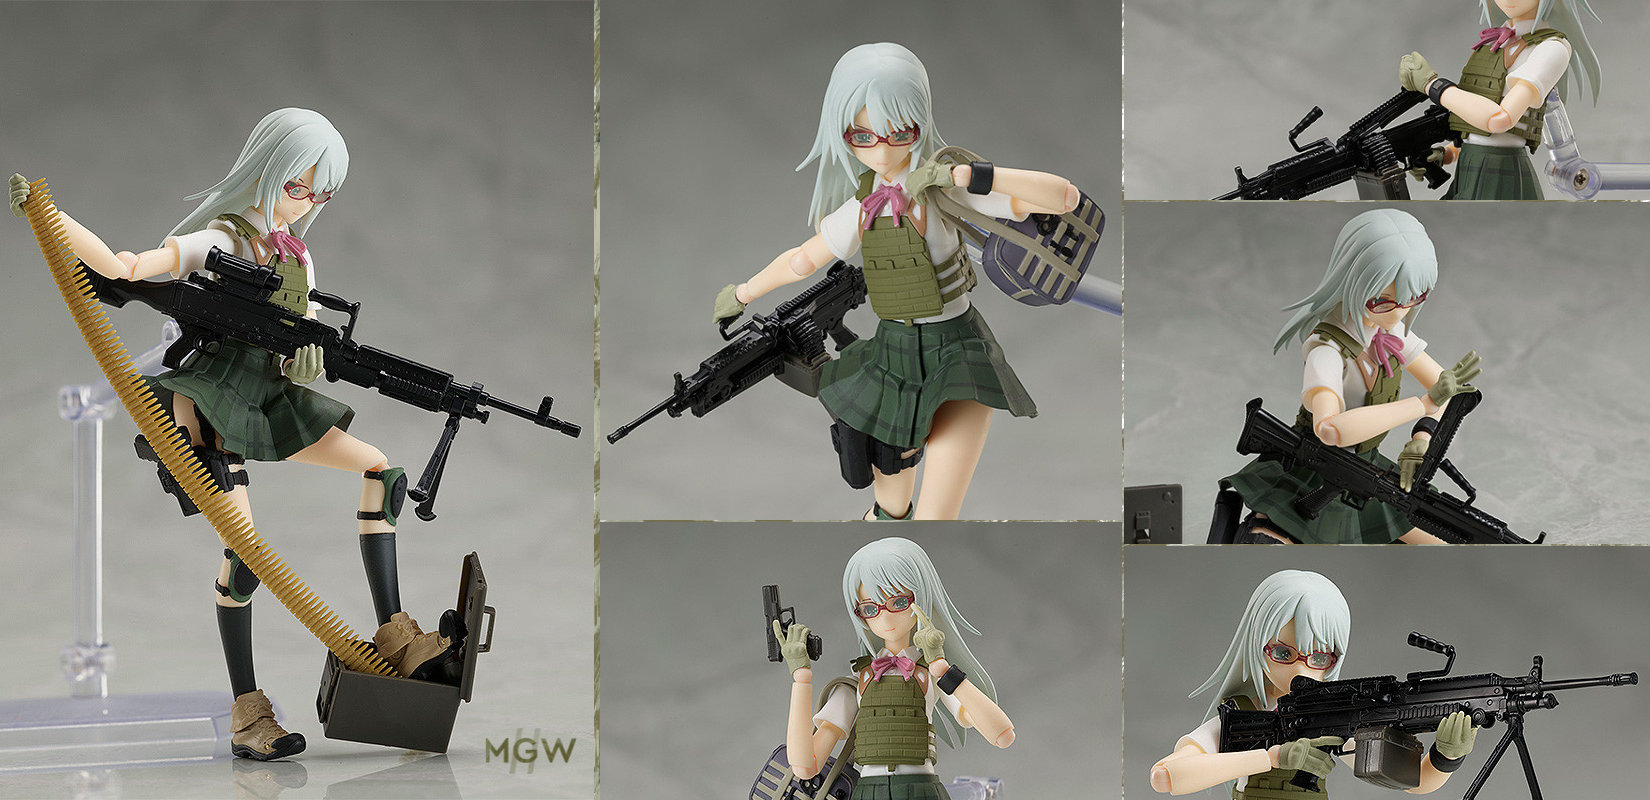 figma Nishibe Ai by TOMYTEC from Little Armory with illustration by Fuyuno Haruaki